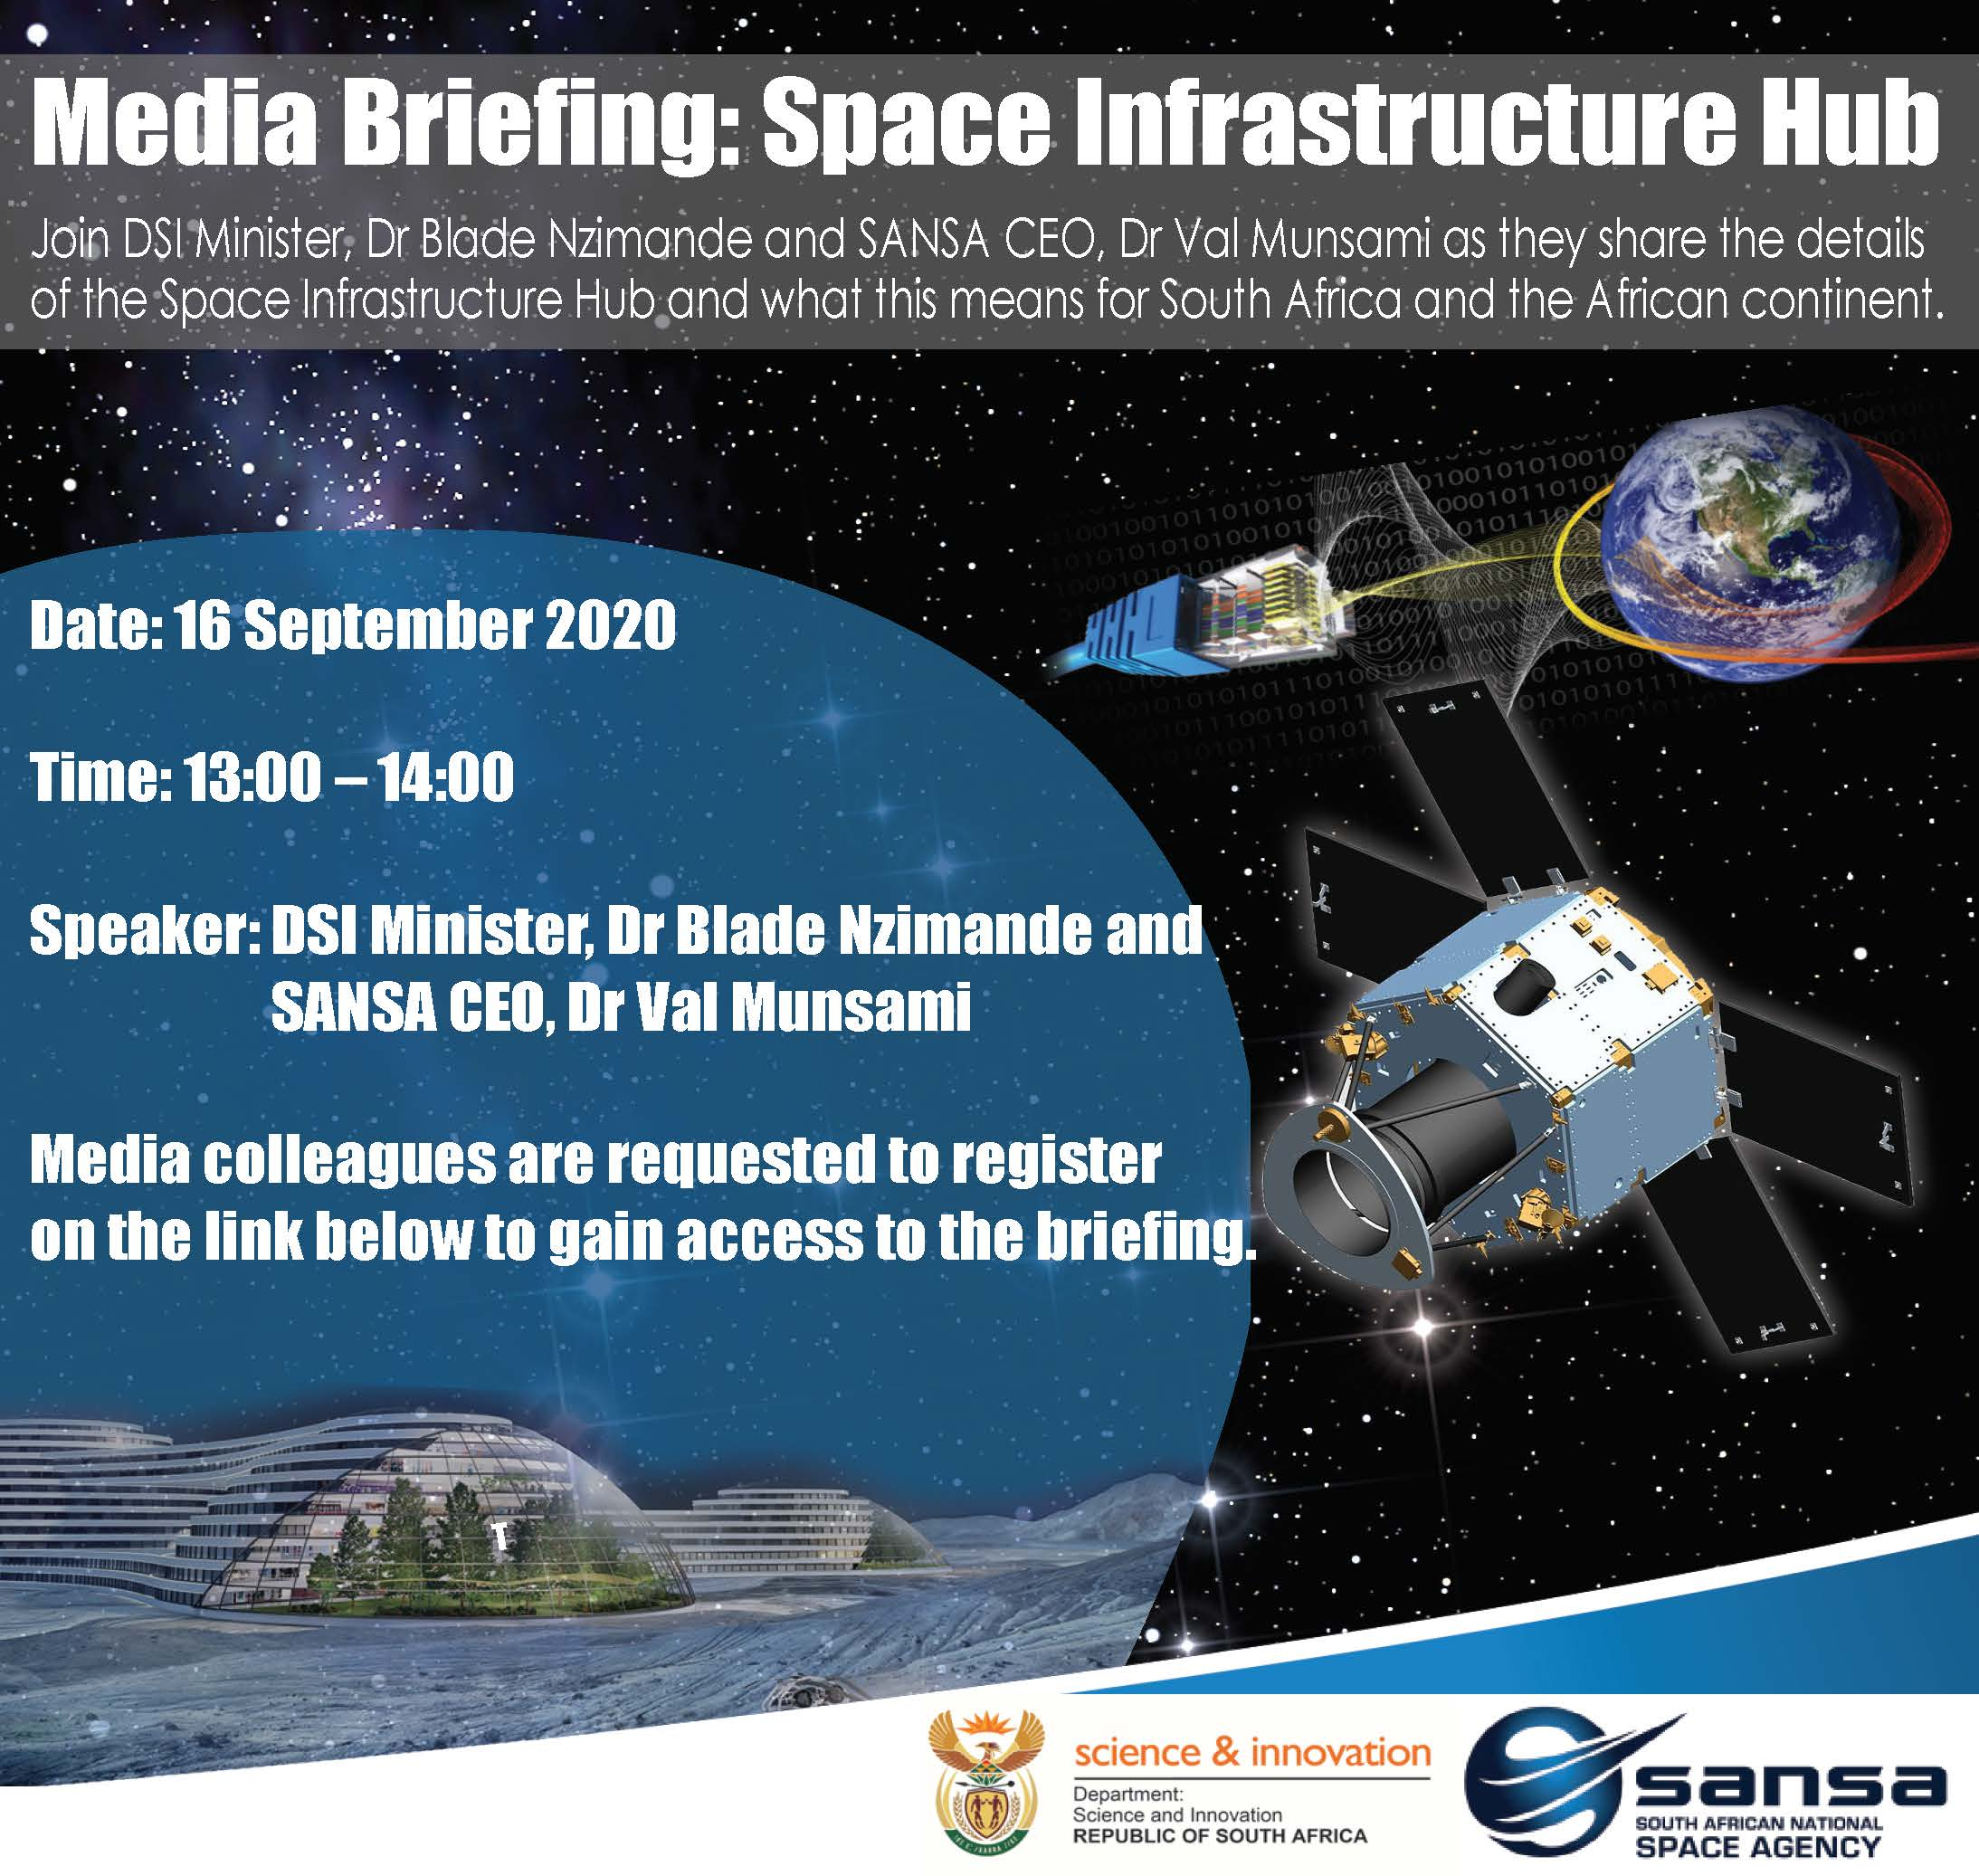 Media Briefing - Space Infrastructure Hub